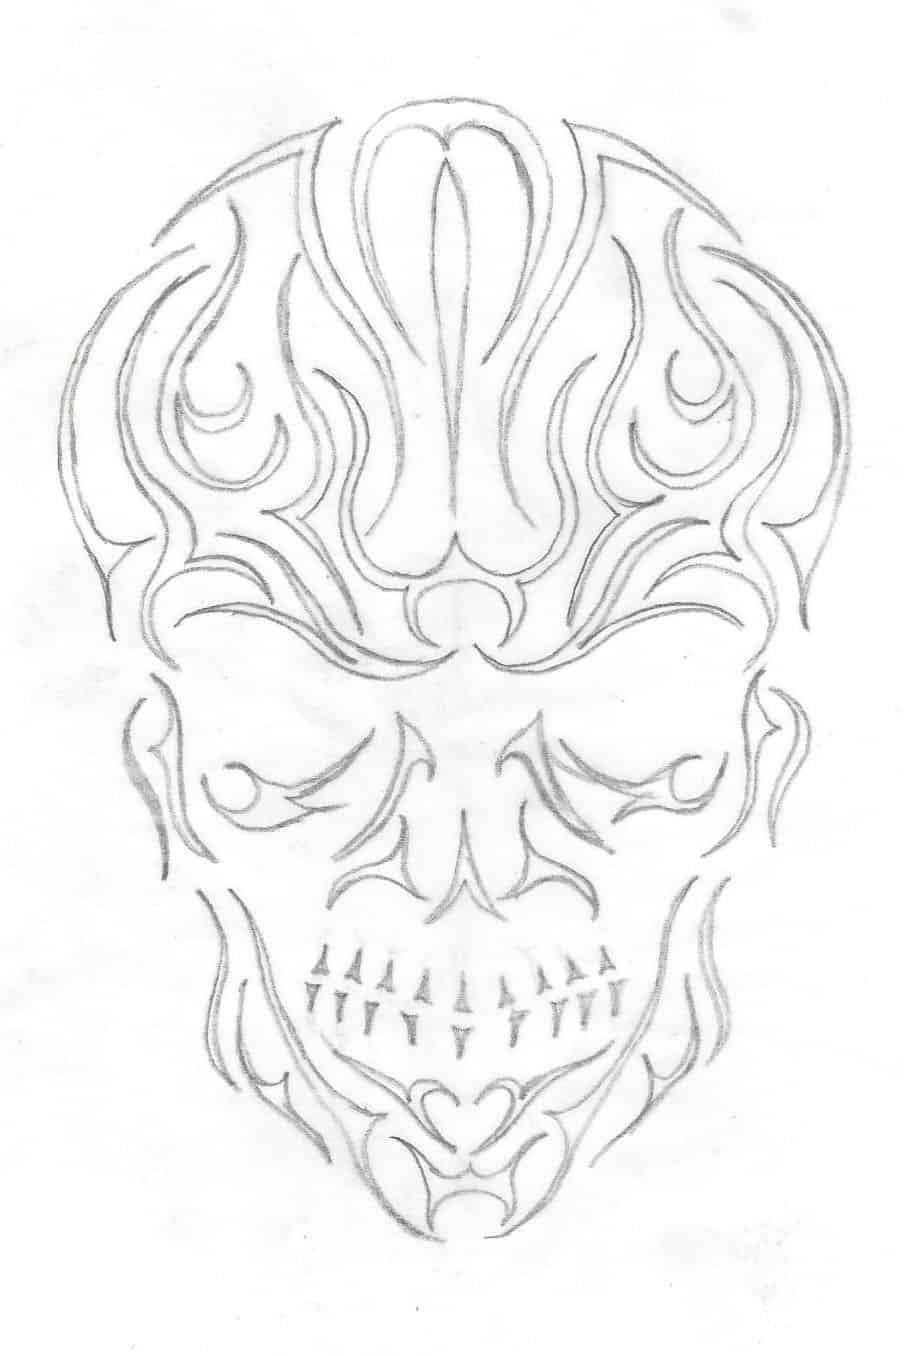 Sketch of an abstract skull